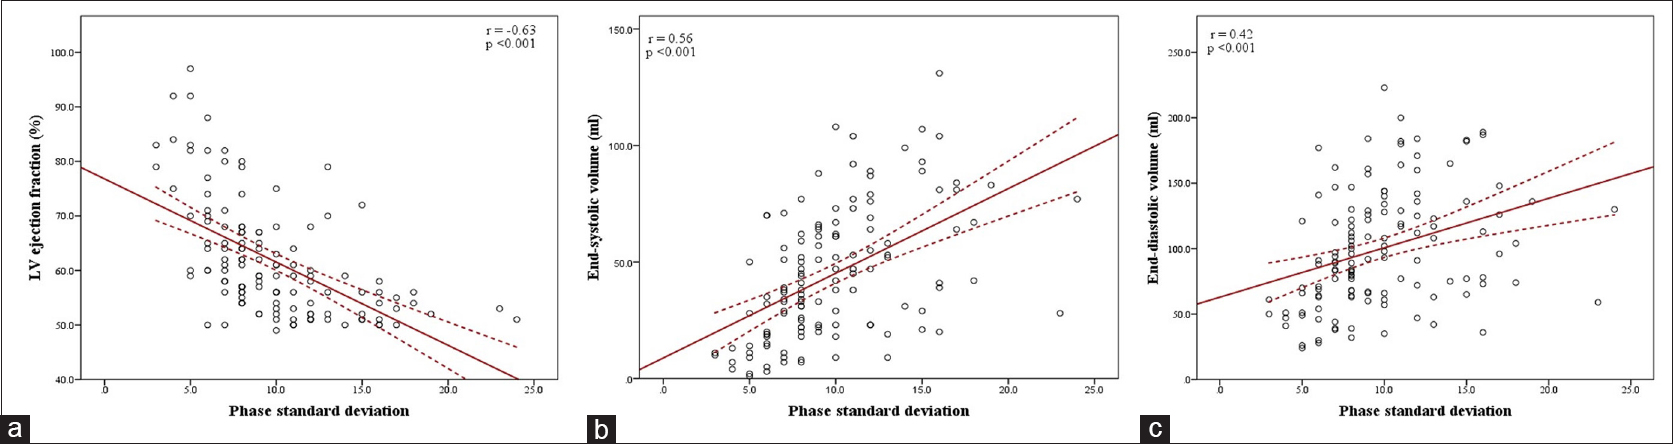 Figure 2: Scatter plot diagrams showing the relationship of phase standard deviation with LV ejection fraction (a), end-systolic volume (b), and end-diastolic volume (c), using QPS-QGS program. The red line represents the regression line, and dotted red lines indicate 95% confidence limits for the regression line